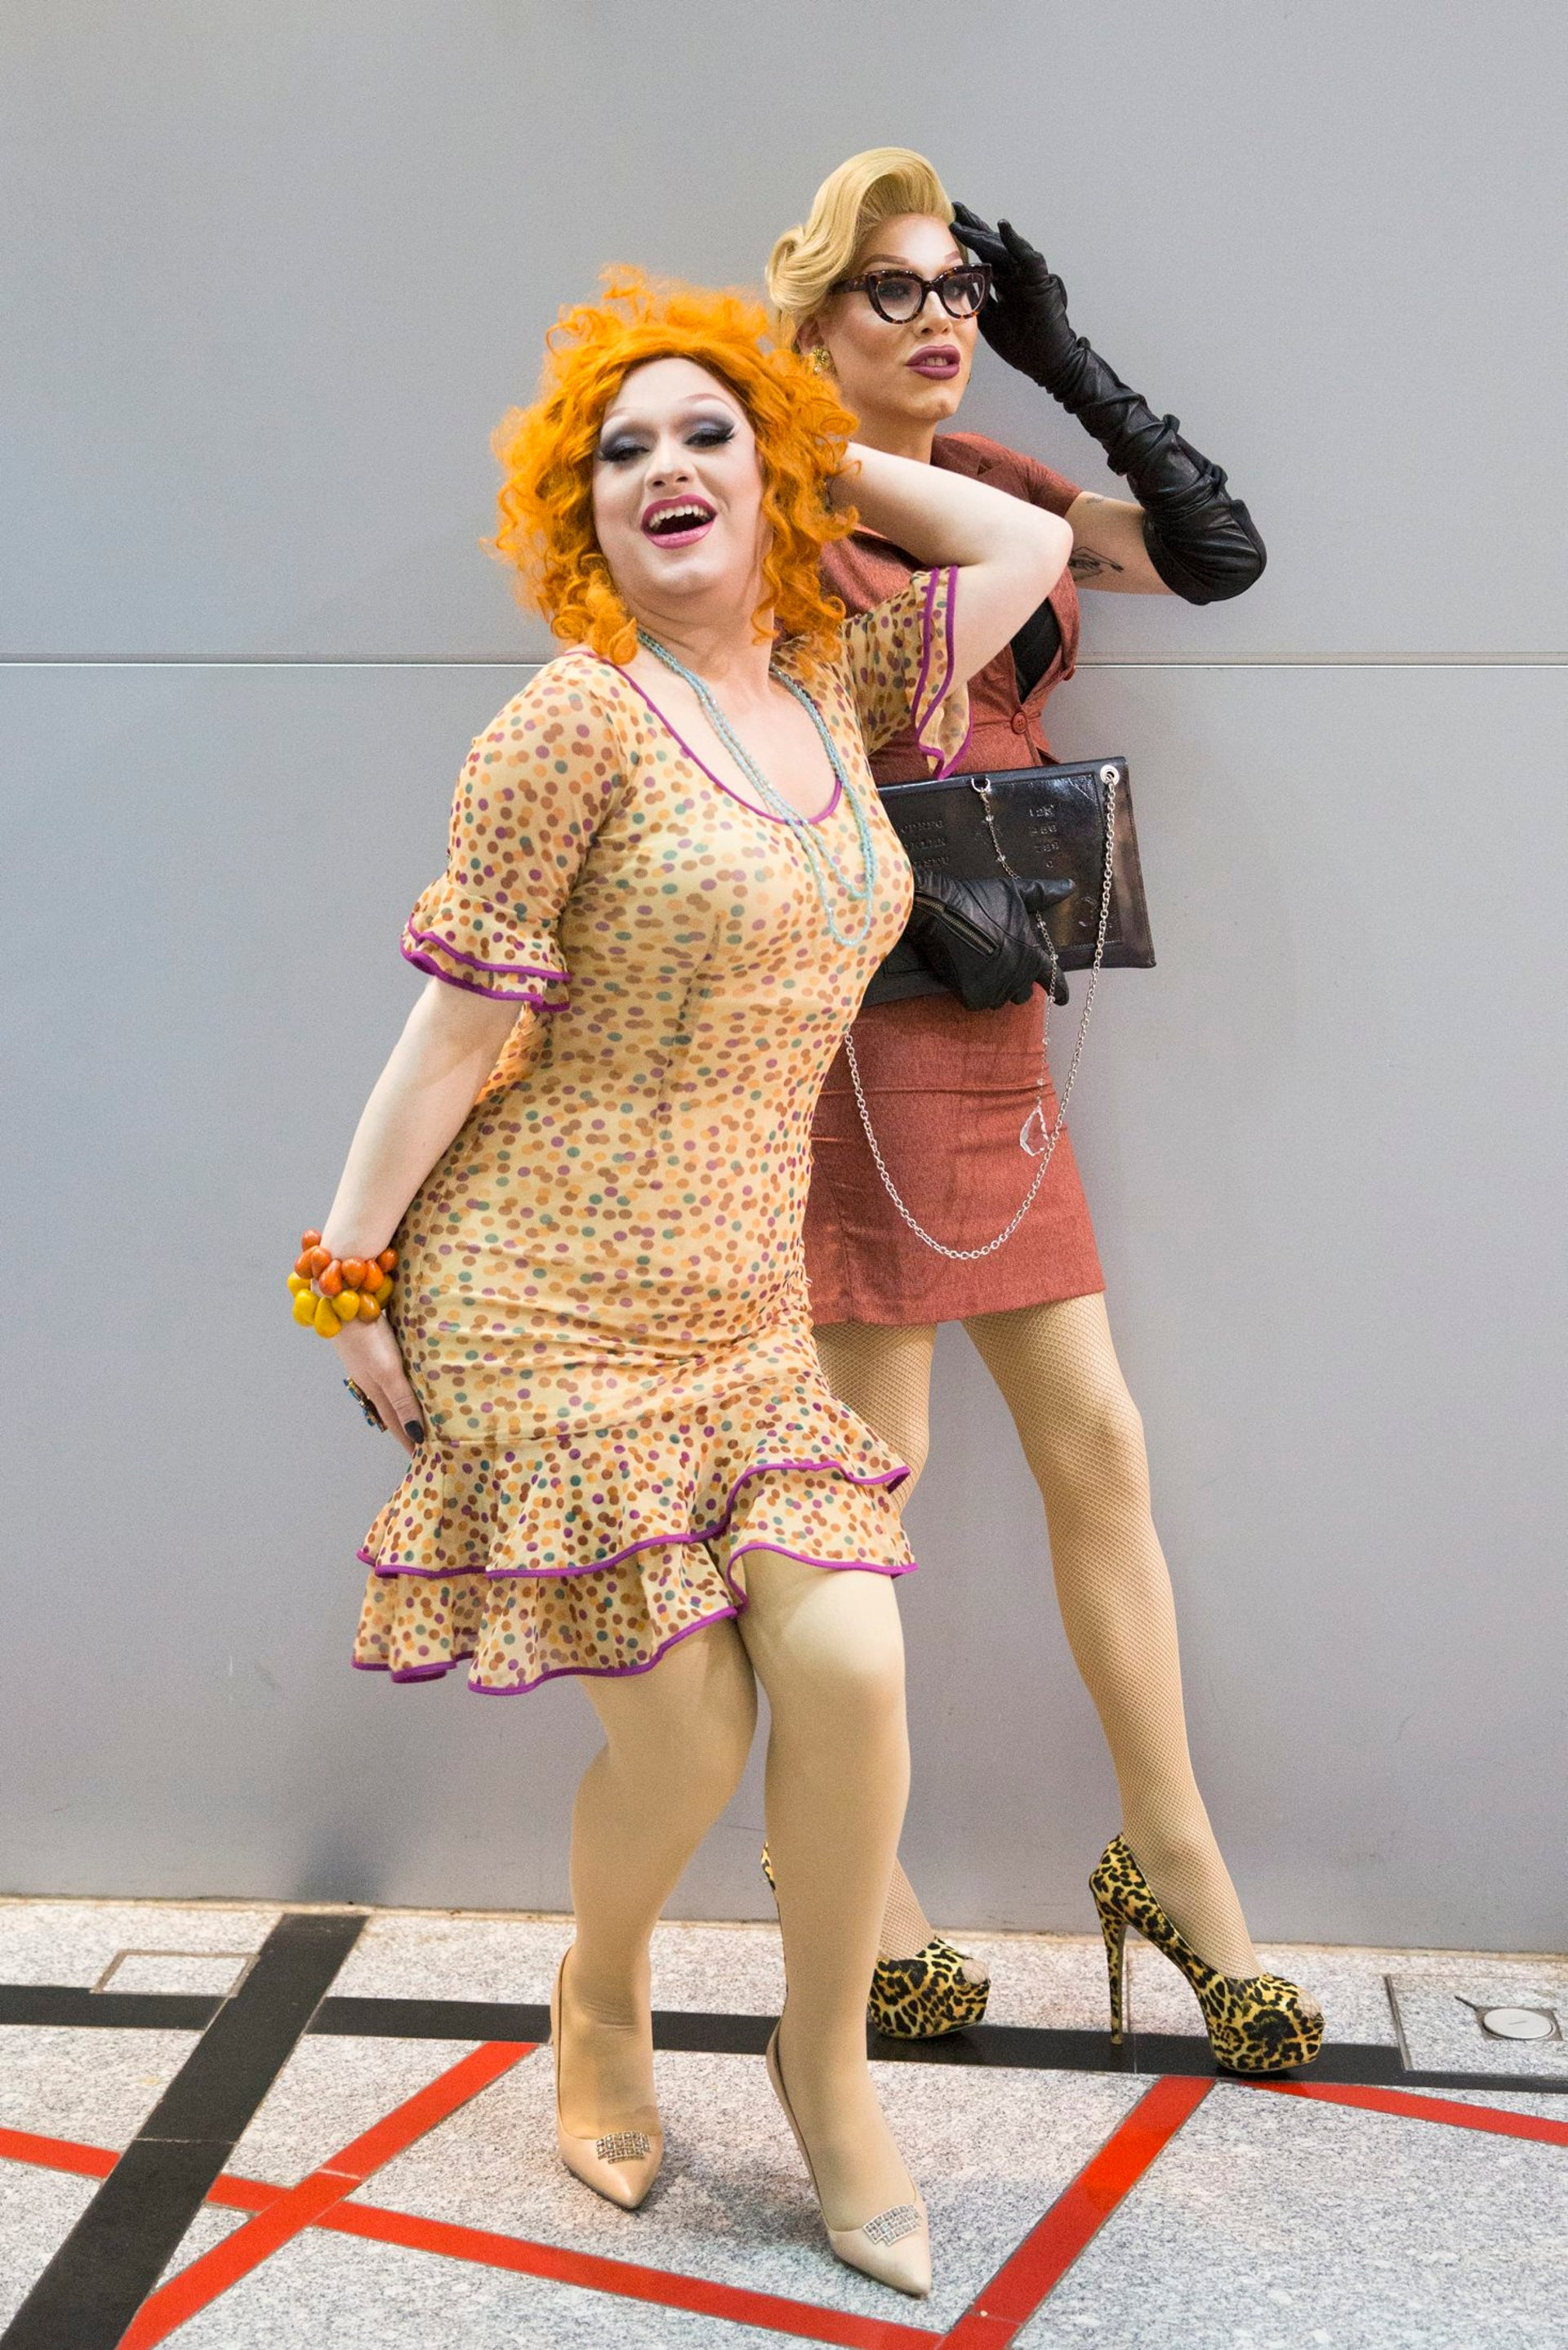 Jinkx Monsoon (in front) and Sharon Needles in Tel Aviv.